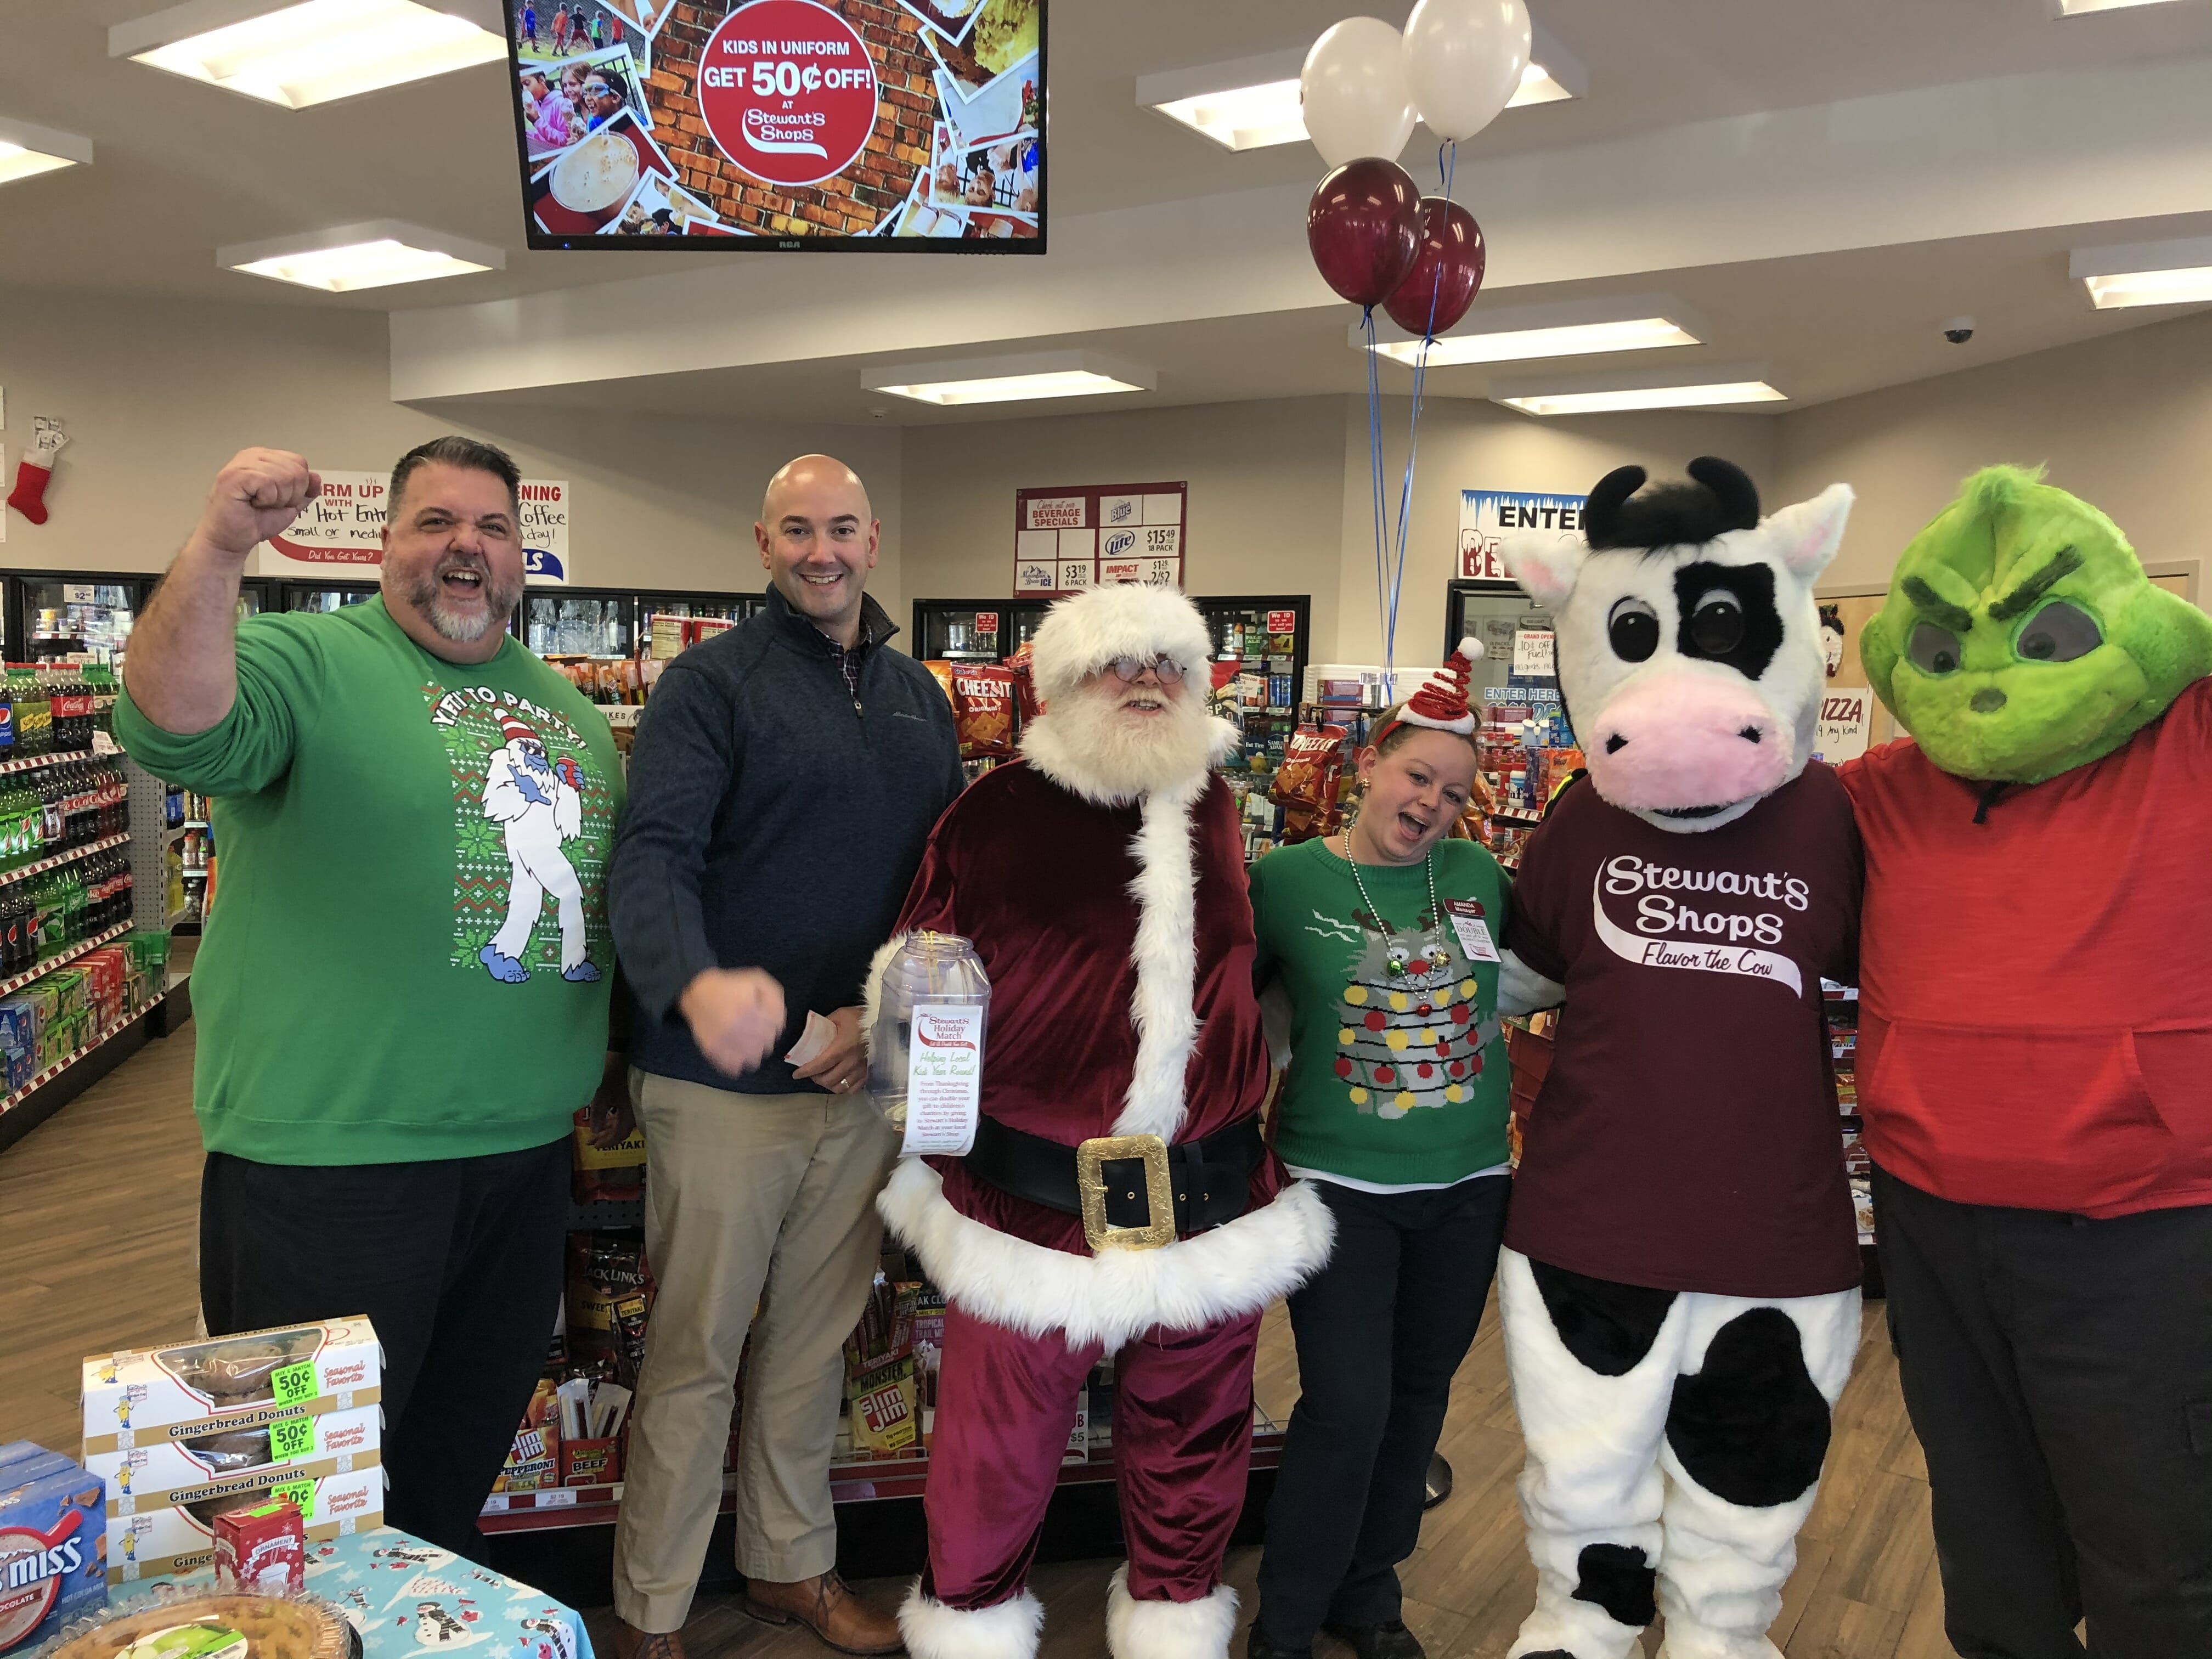 An excited and festive group at the grand opening including santa, a cow, and the Grinch.